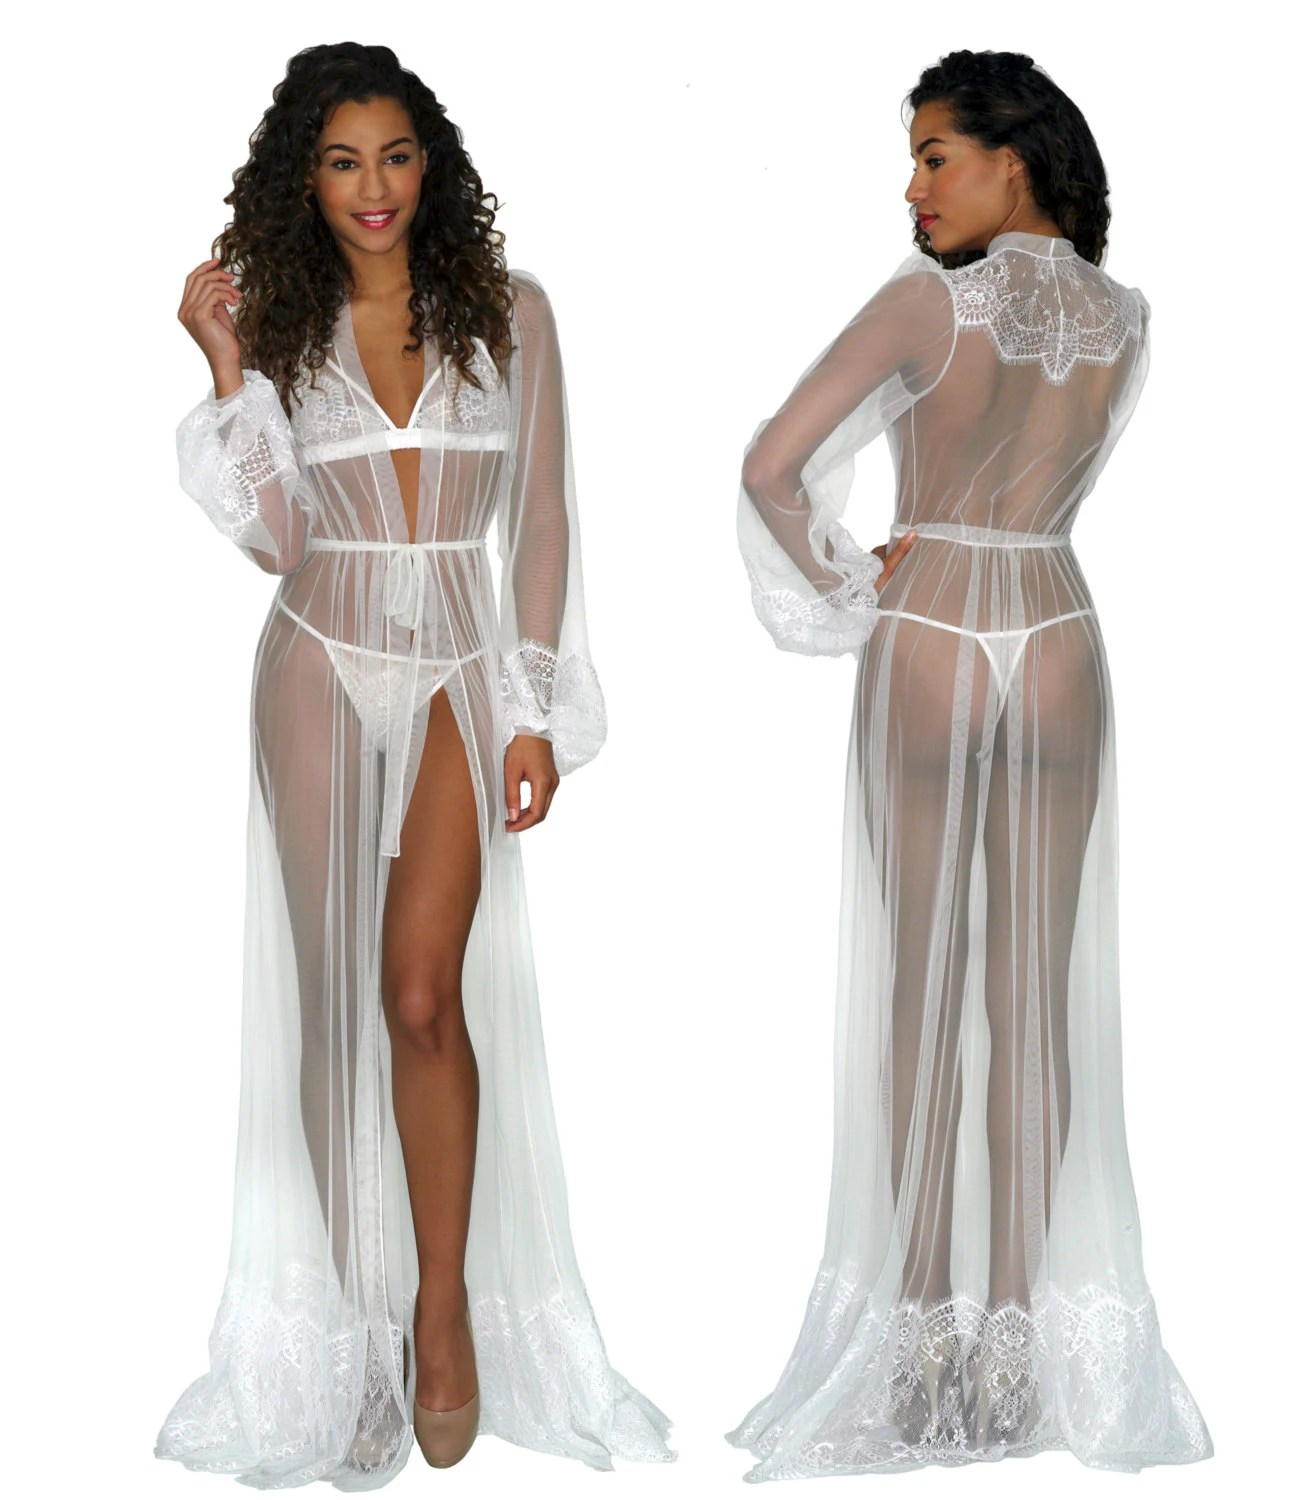 Giselle robe in ivory mesh and lace white sheer seethrough